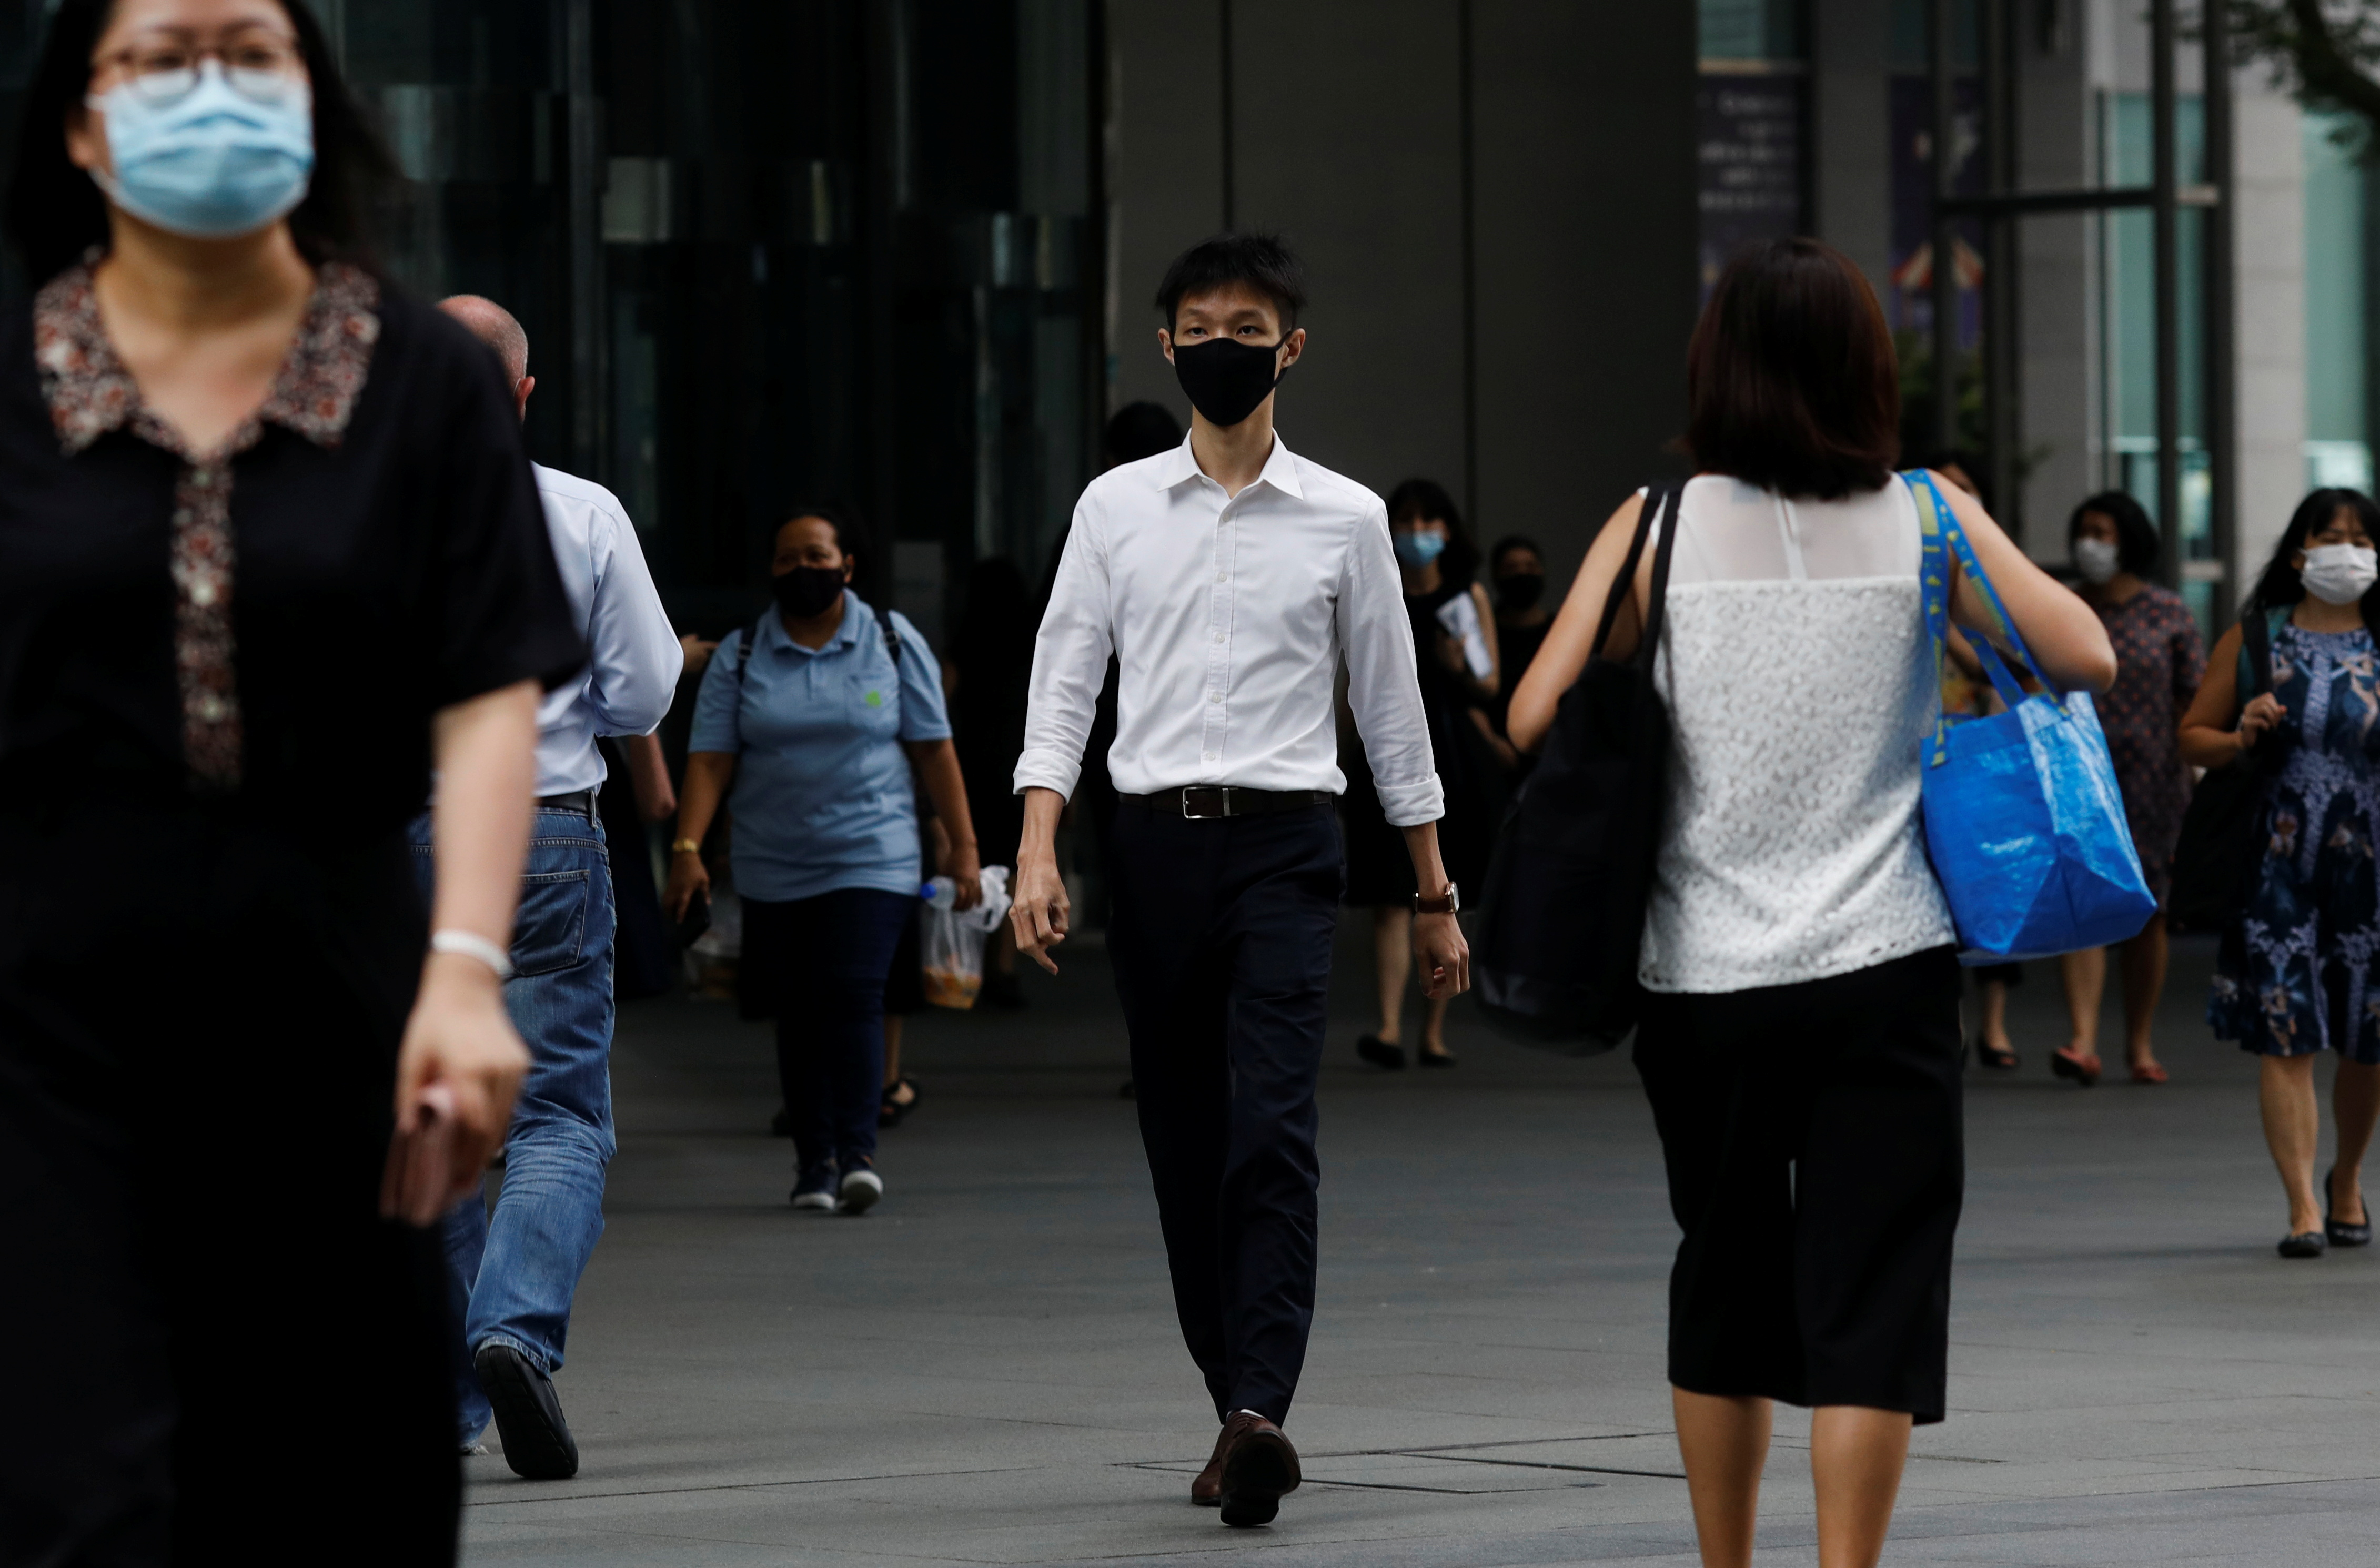 People wearing protective masks as a precaution against the coronavirus disease (COVID-19) walk during lunch hour at the central business district in Singapore, December 14, 2020.  REUTERS/Edgar Su